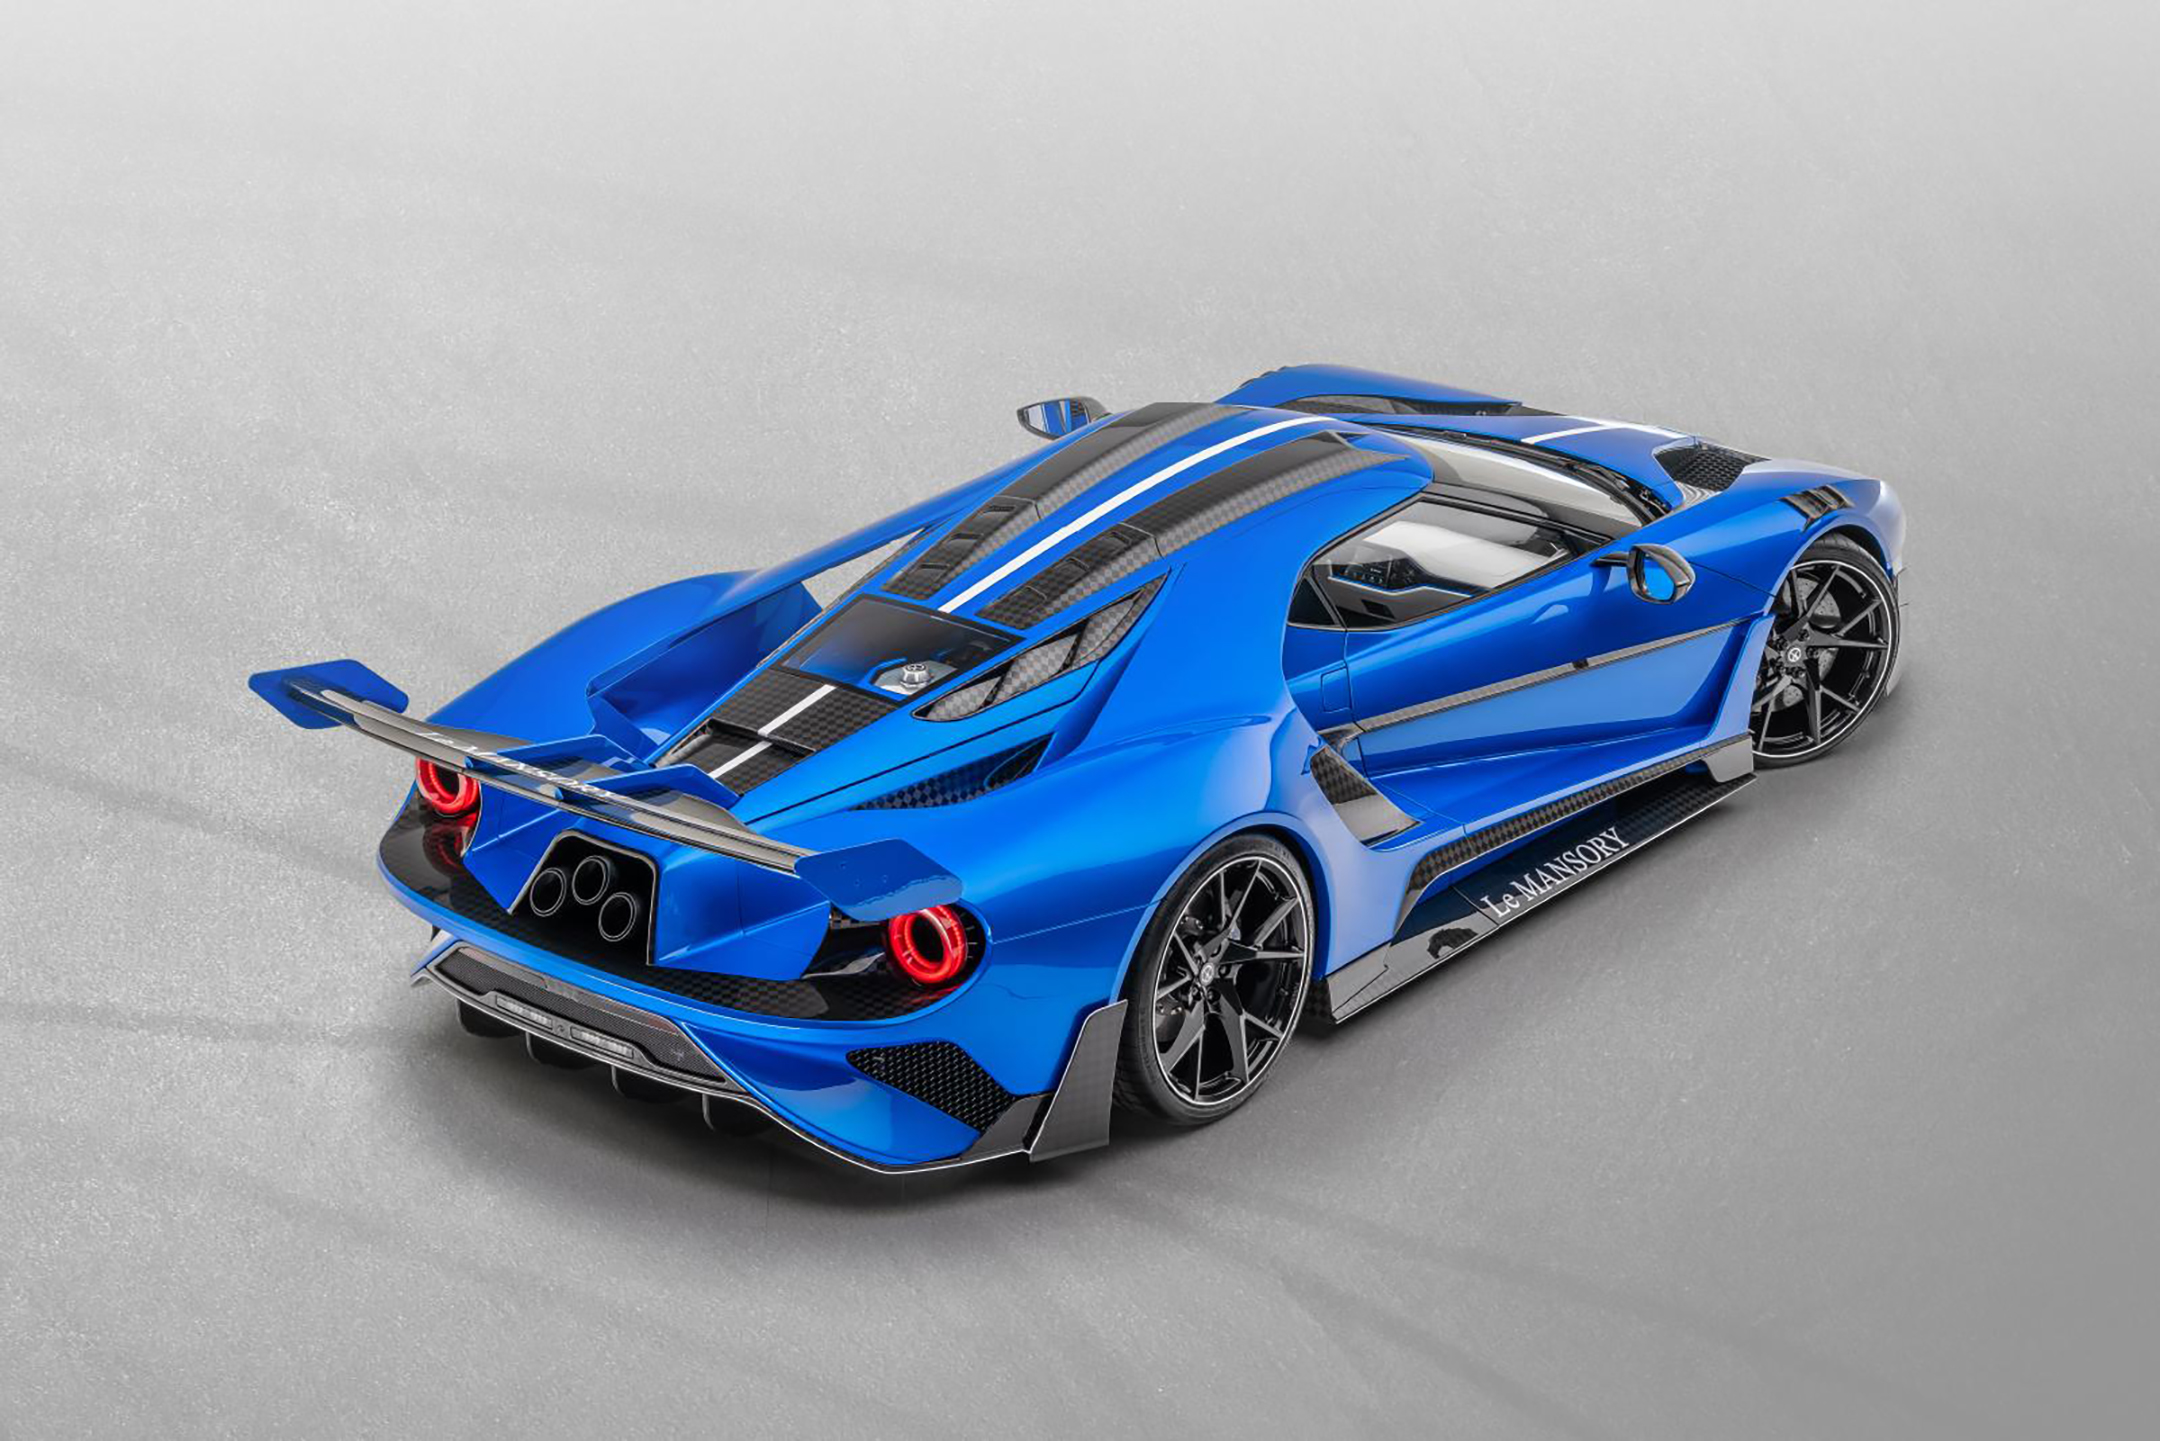 Le MANSORY - Ford GT custom - 2020 - top view - rear side-face / profil arrière